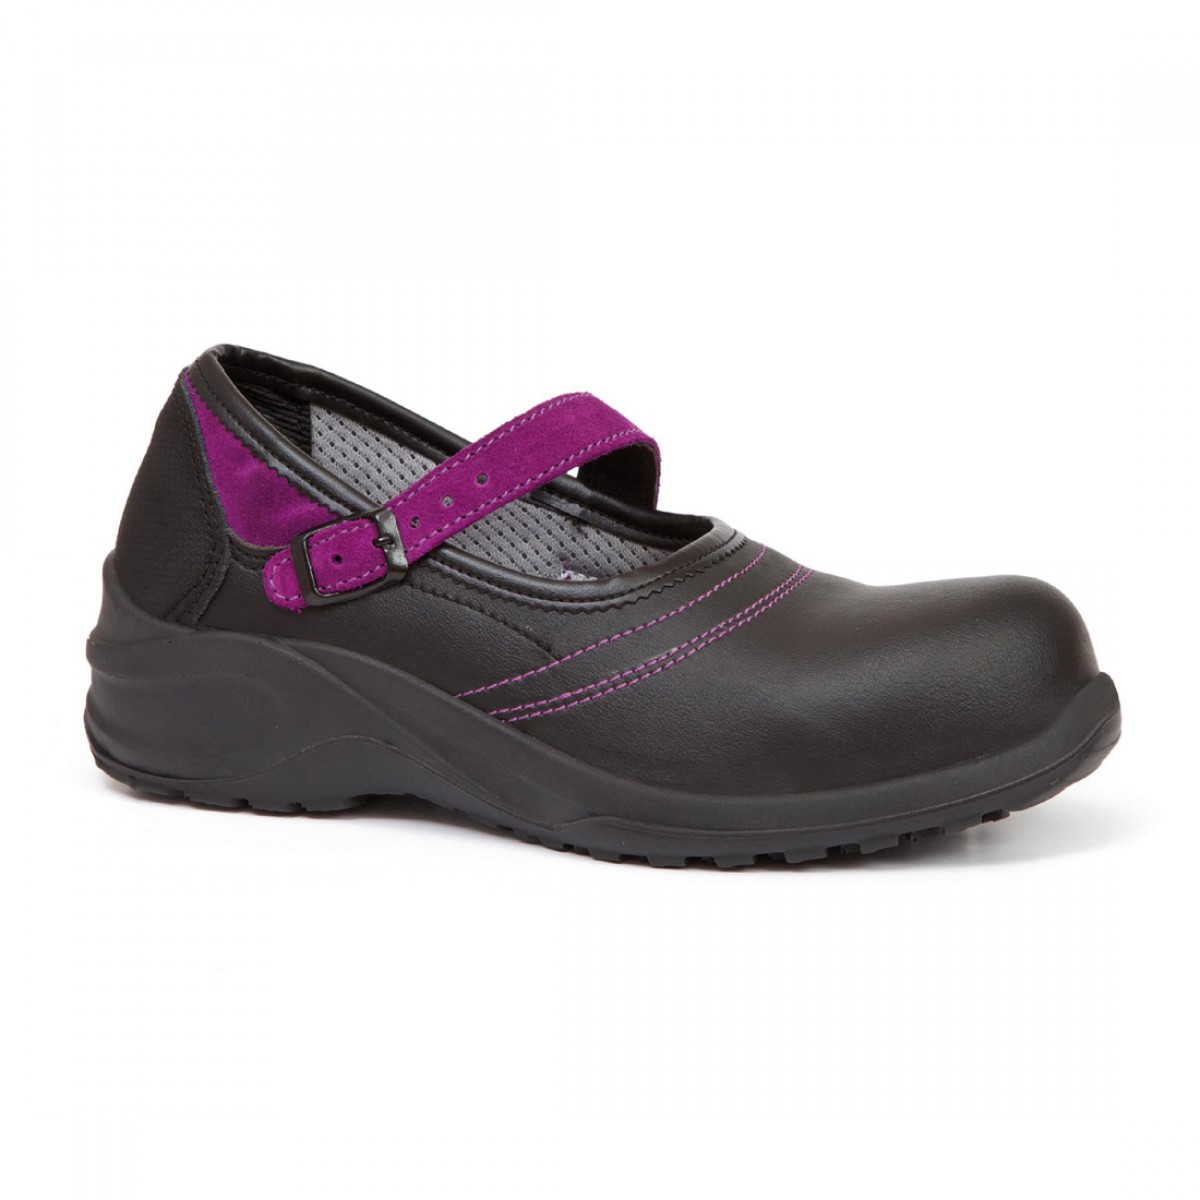 Giasco Violet Microwash ESD Black Ladies Ballerina Safety Court Shoes